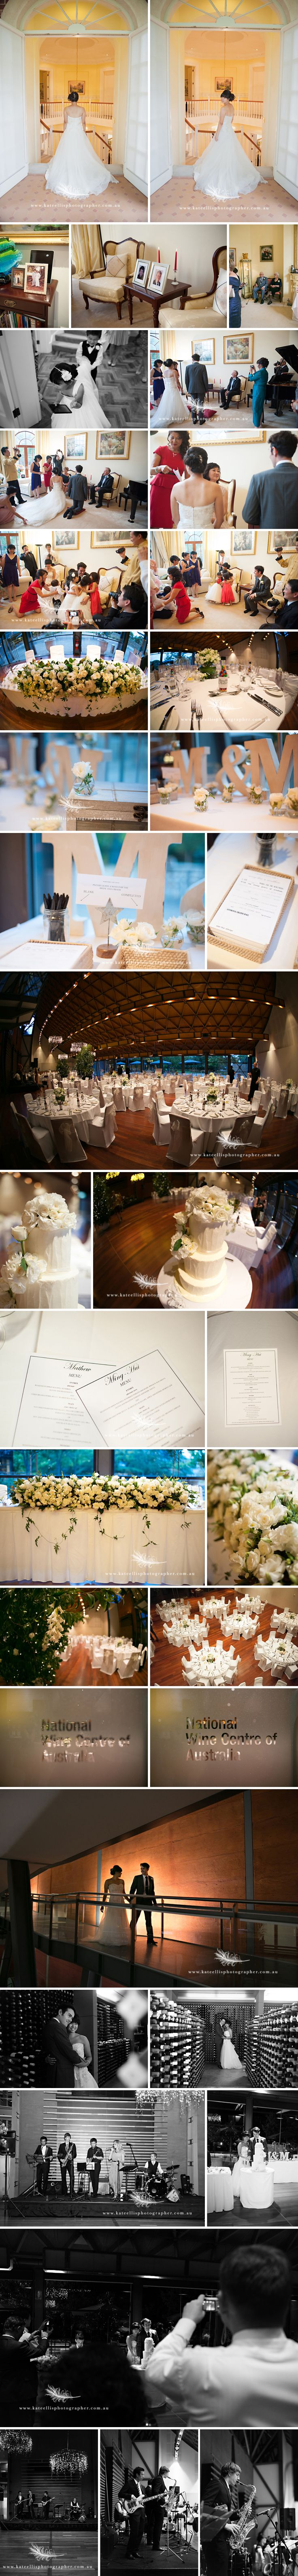 4 adelaide wedding photography at st peters cathedral national wine center